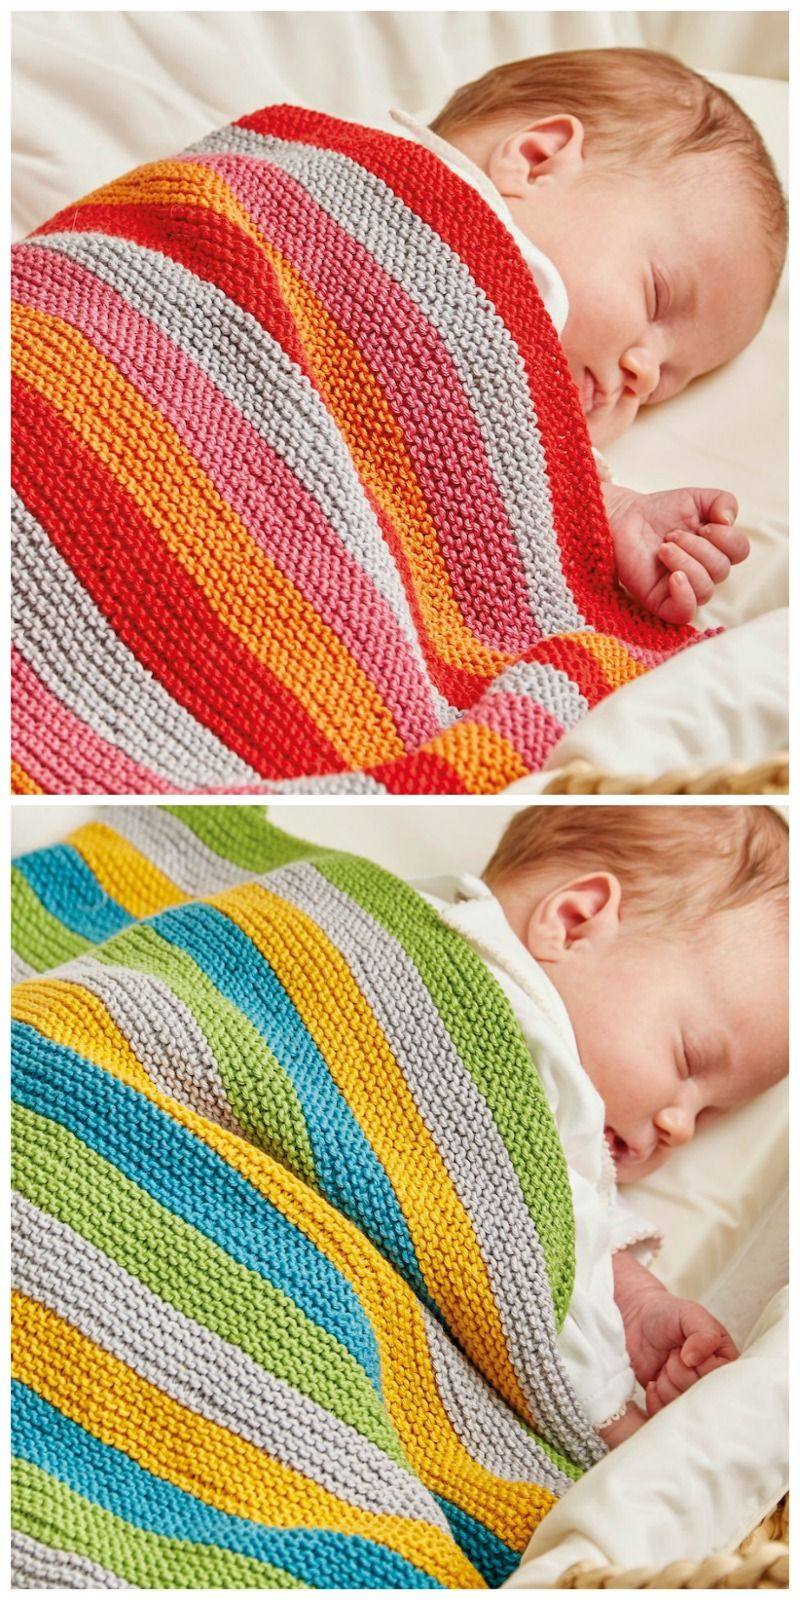 Knitted Nursery Collection: Ollie and Polly Blankets | Knit patterns ...